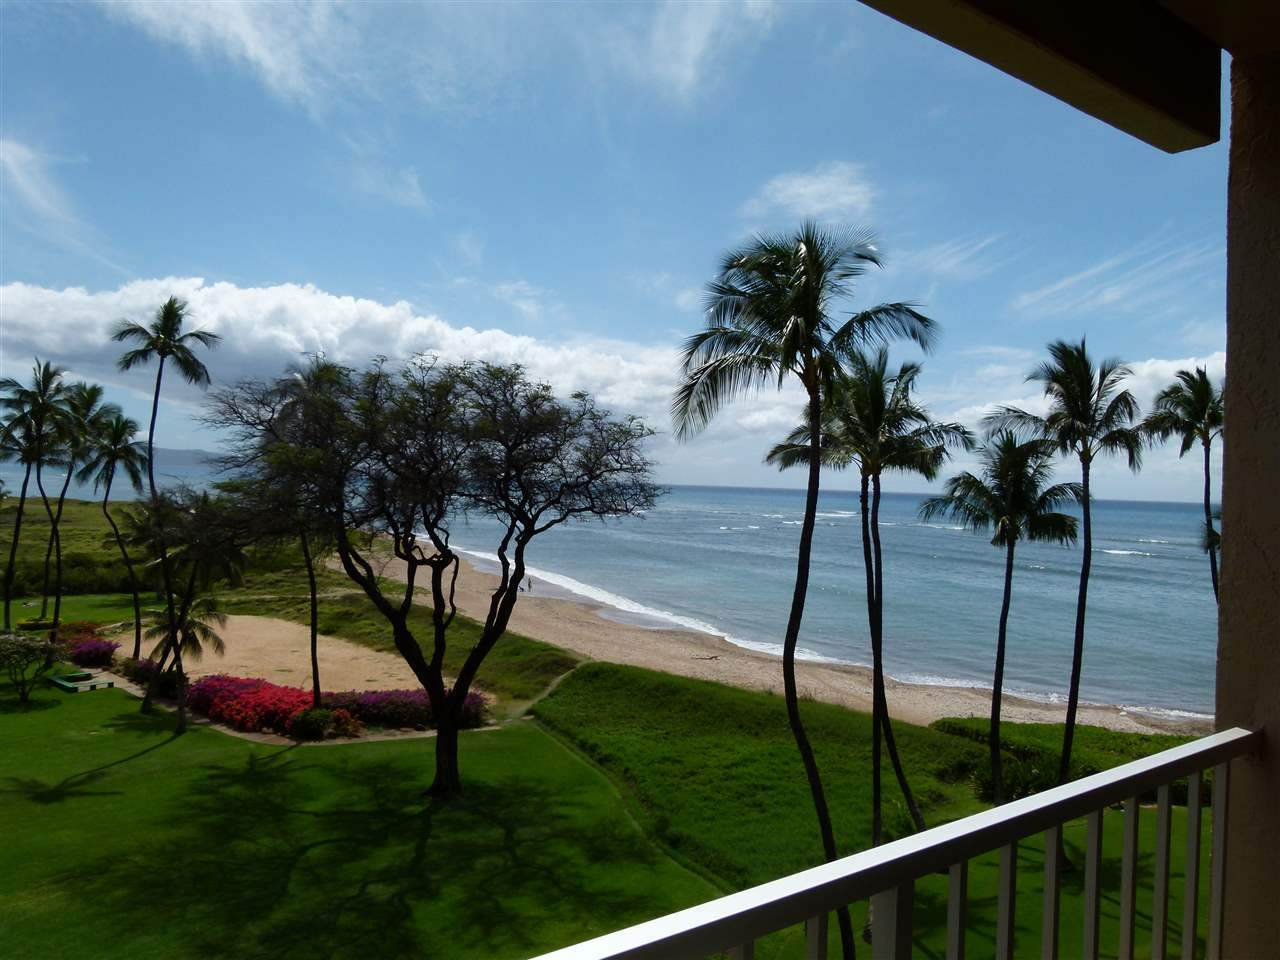 760 Kihei Rd - Photo 1